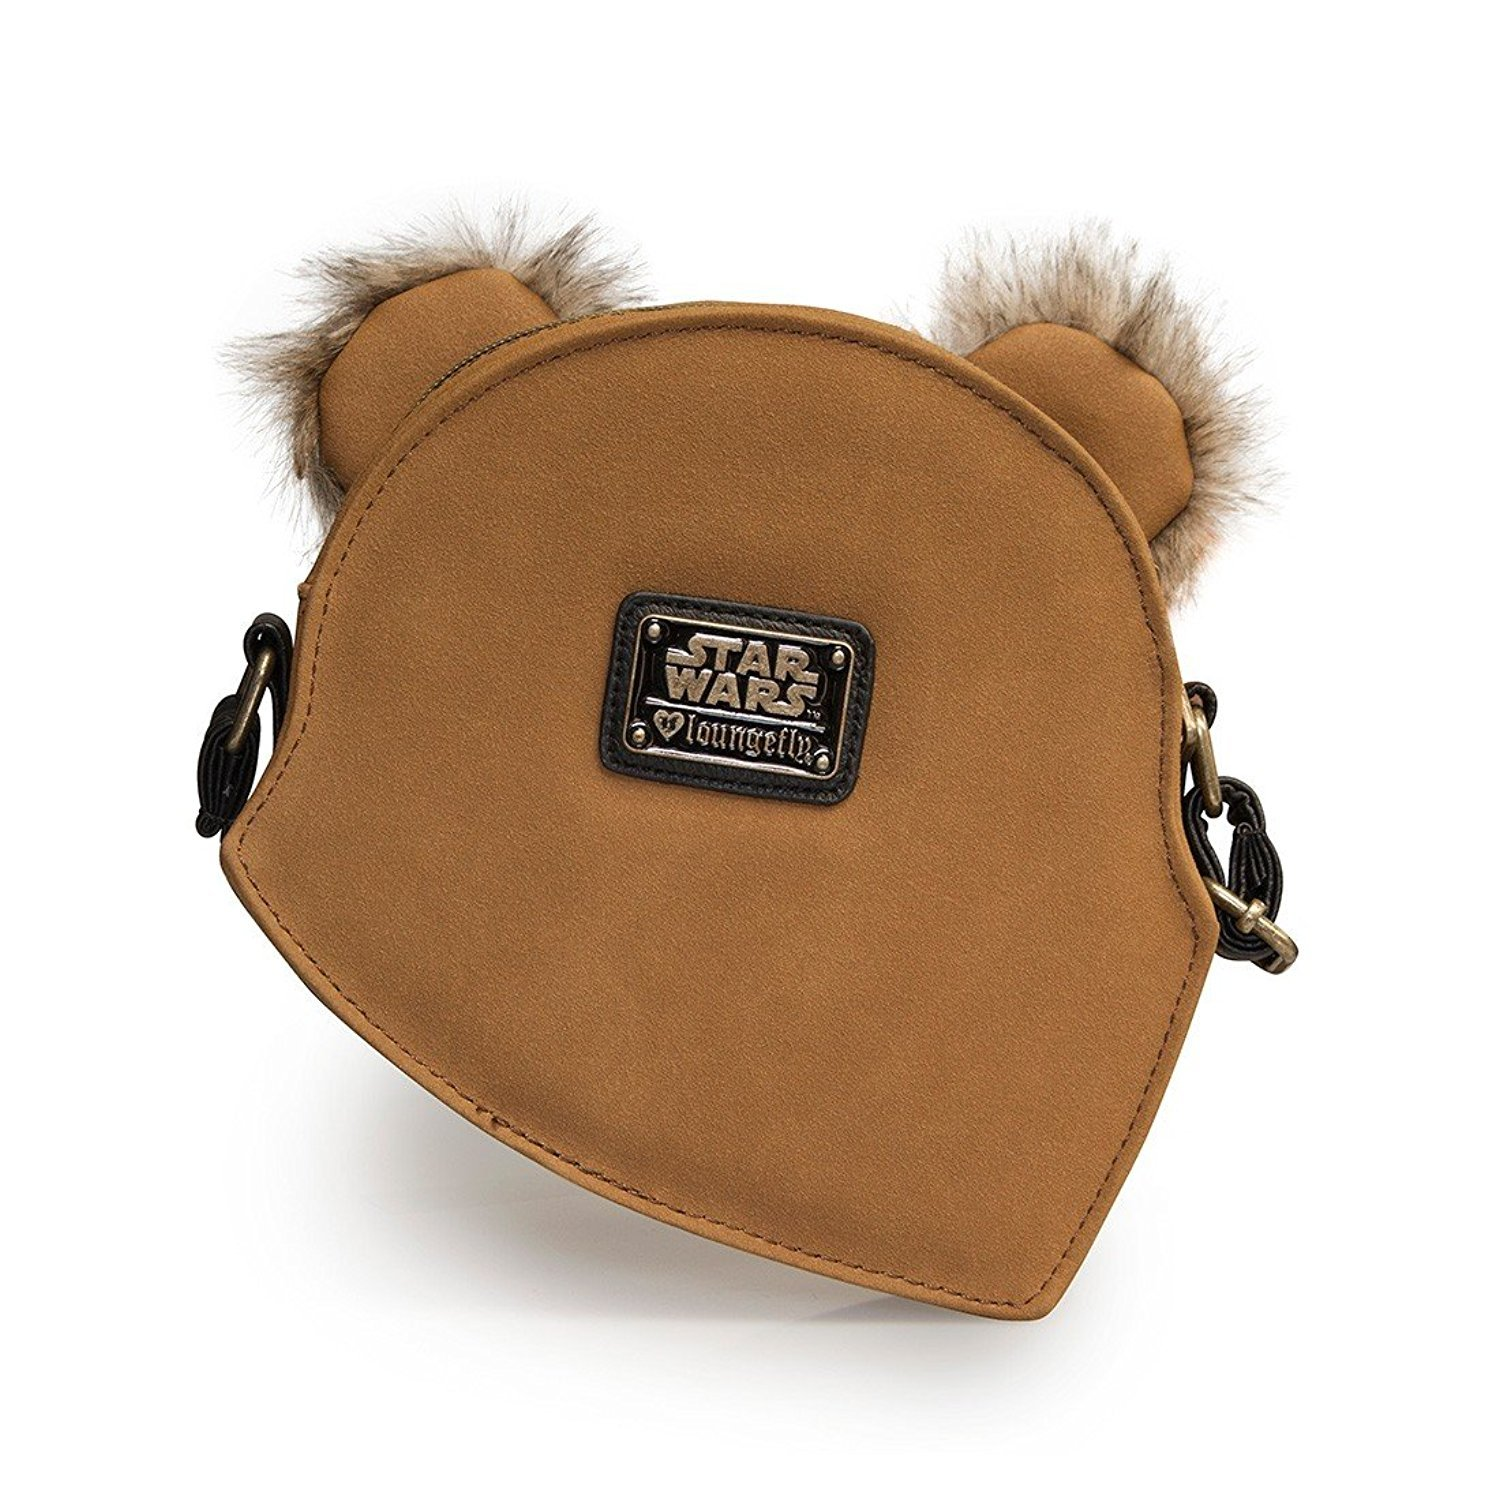 Amazon.com: Producto oficial de Star Wars Ewok Crossbody ...